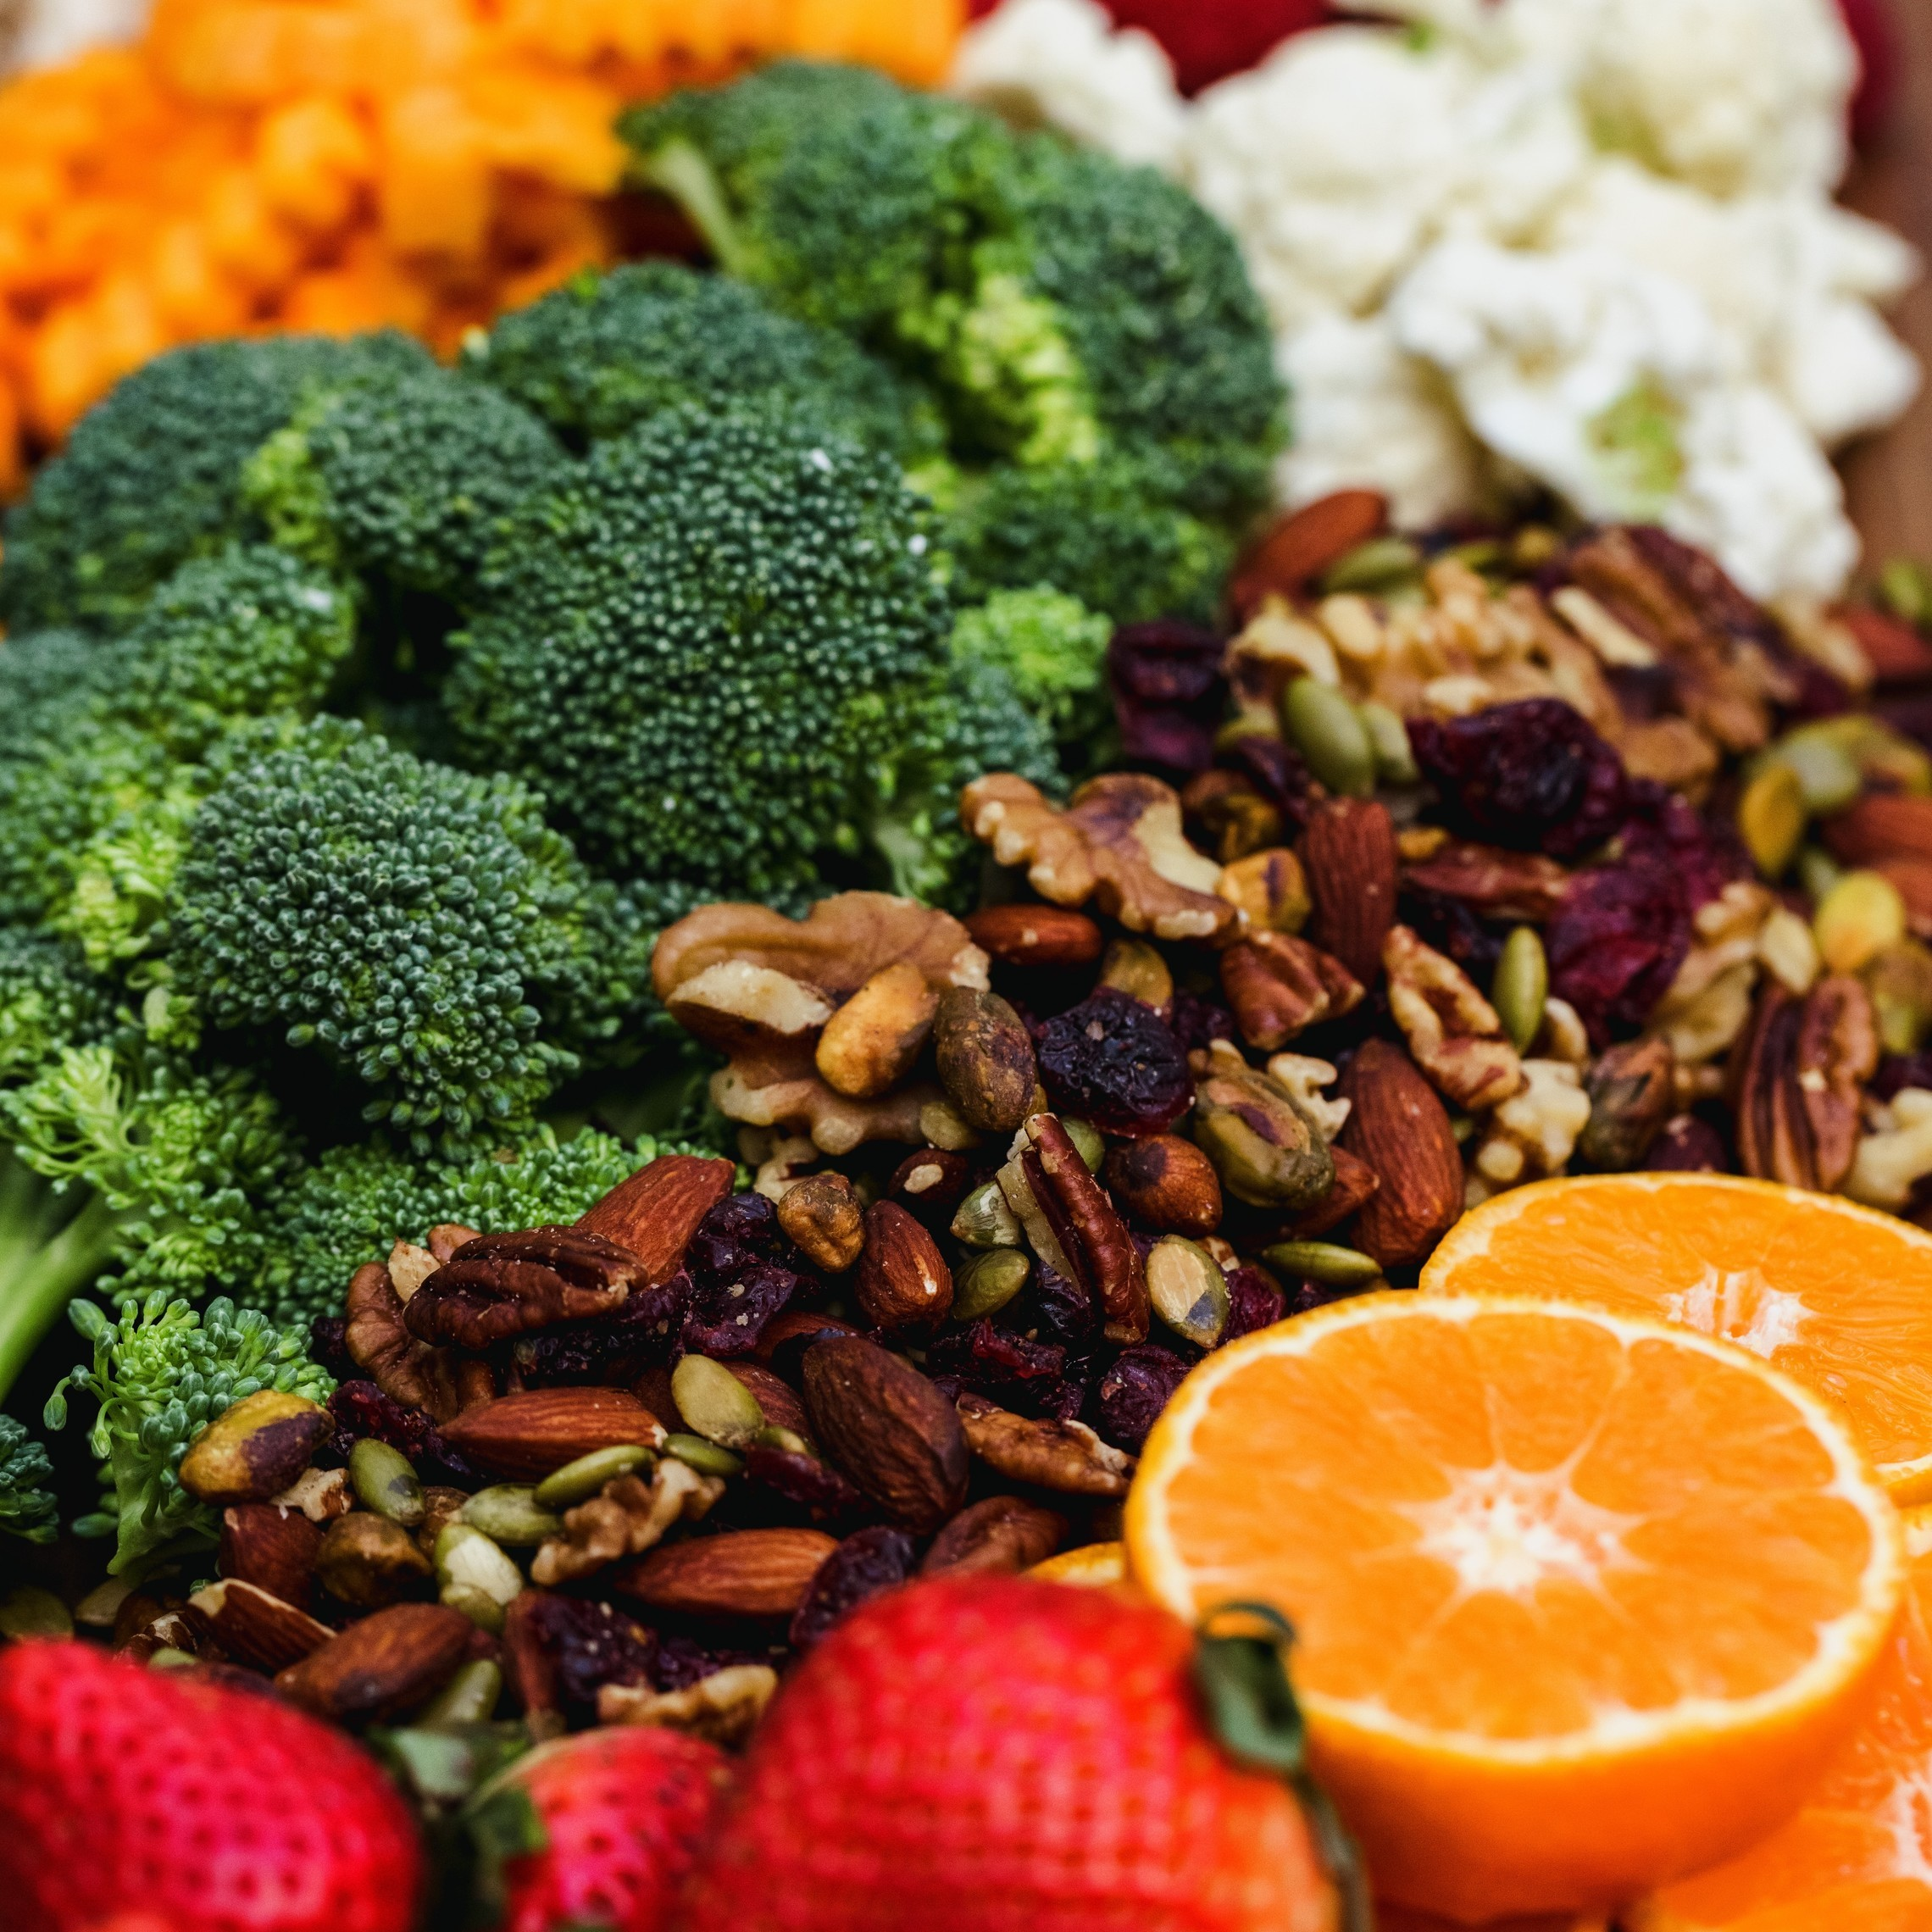 Fruits Vegetables and Nuts